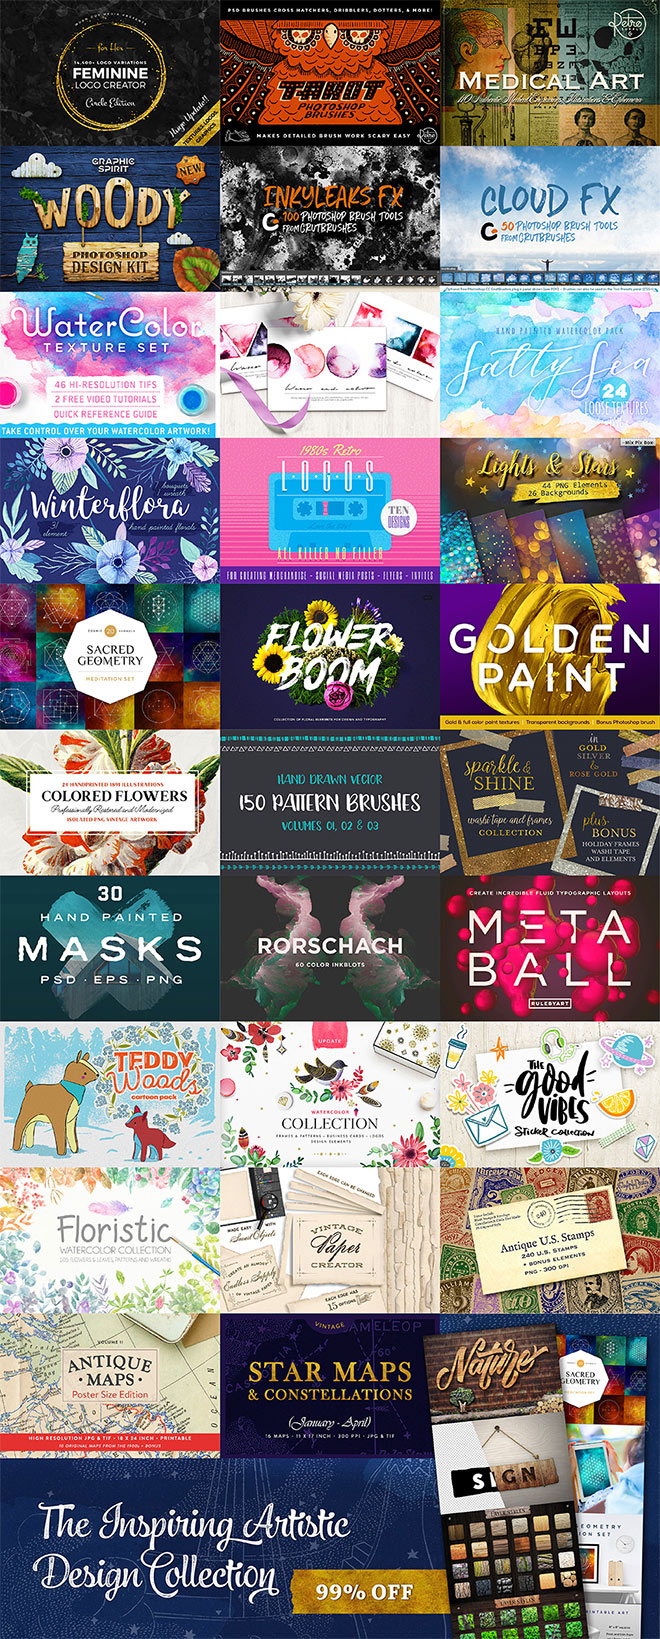 Bring Your Design Work to Life With This Inspiring Artistic Collection (99% off!)